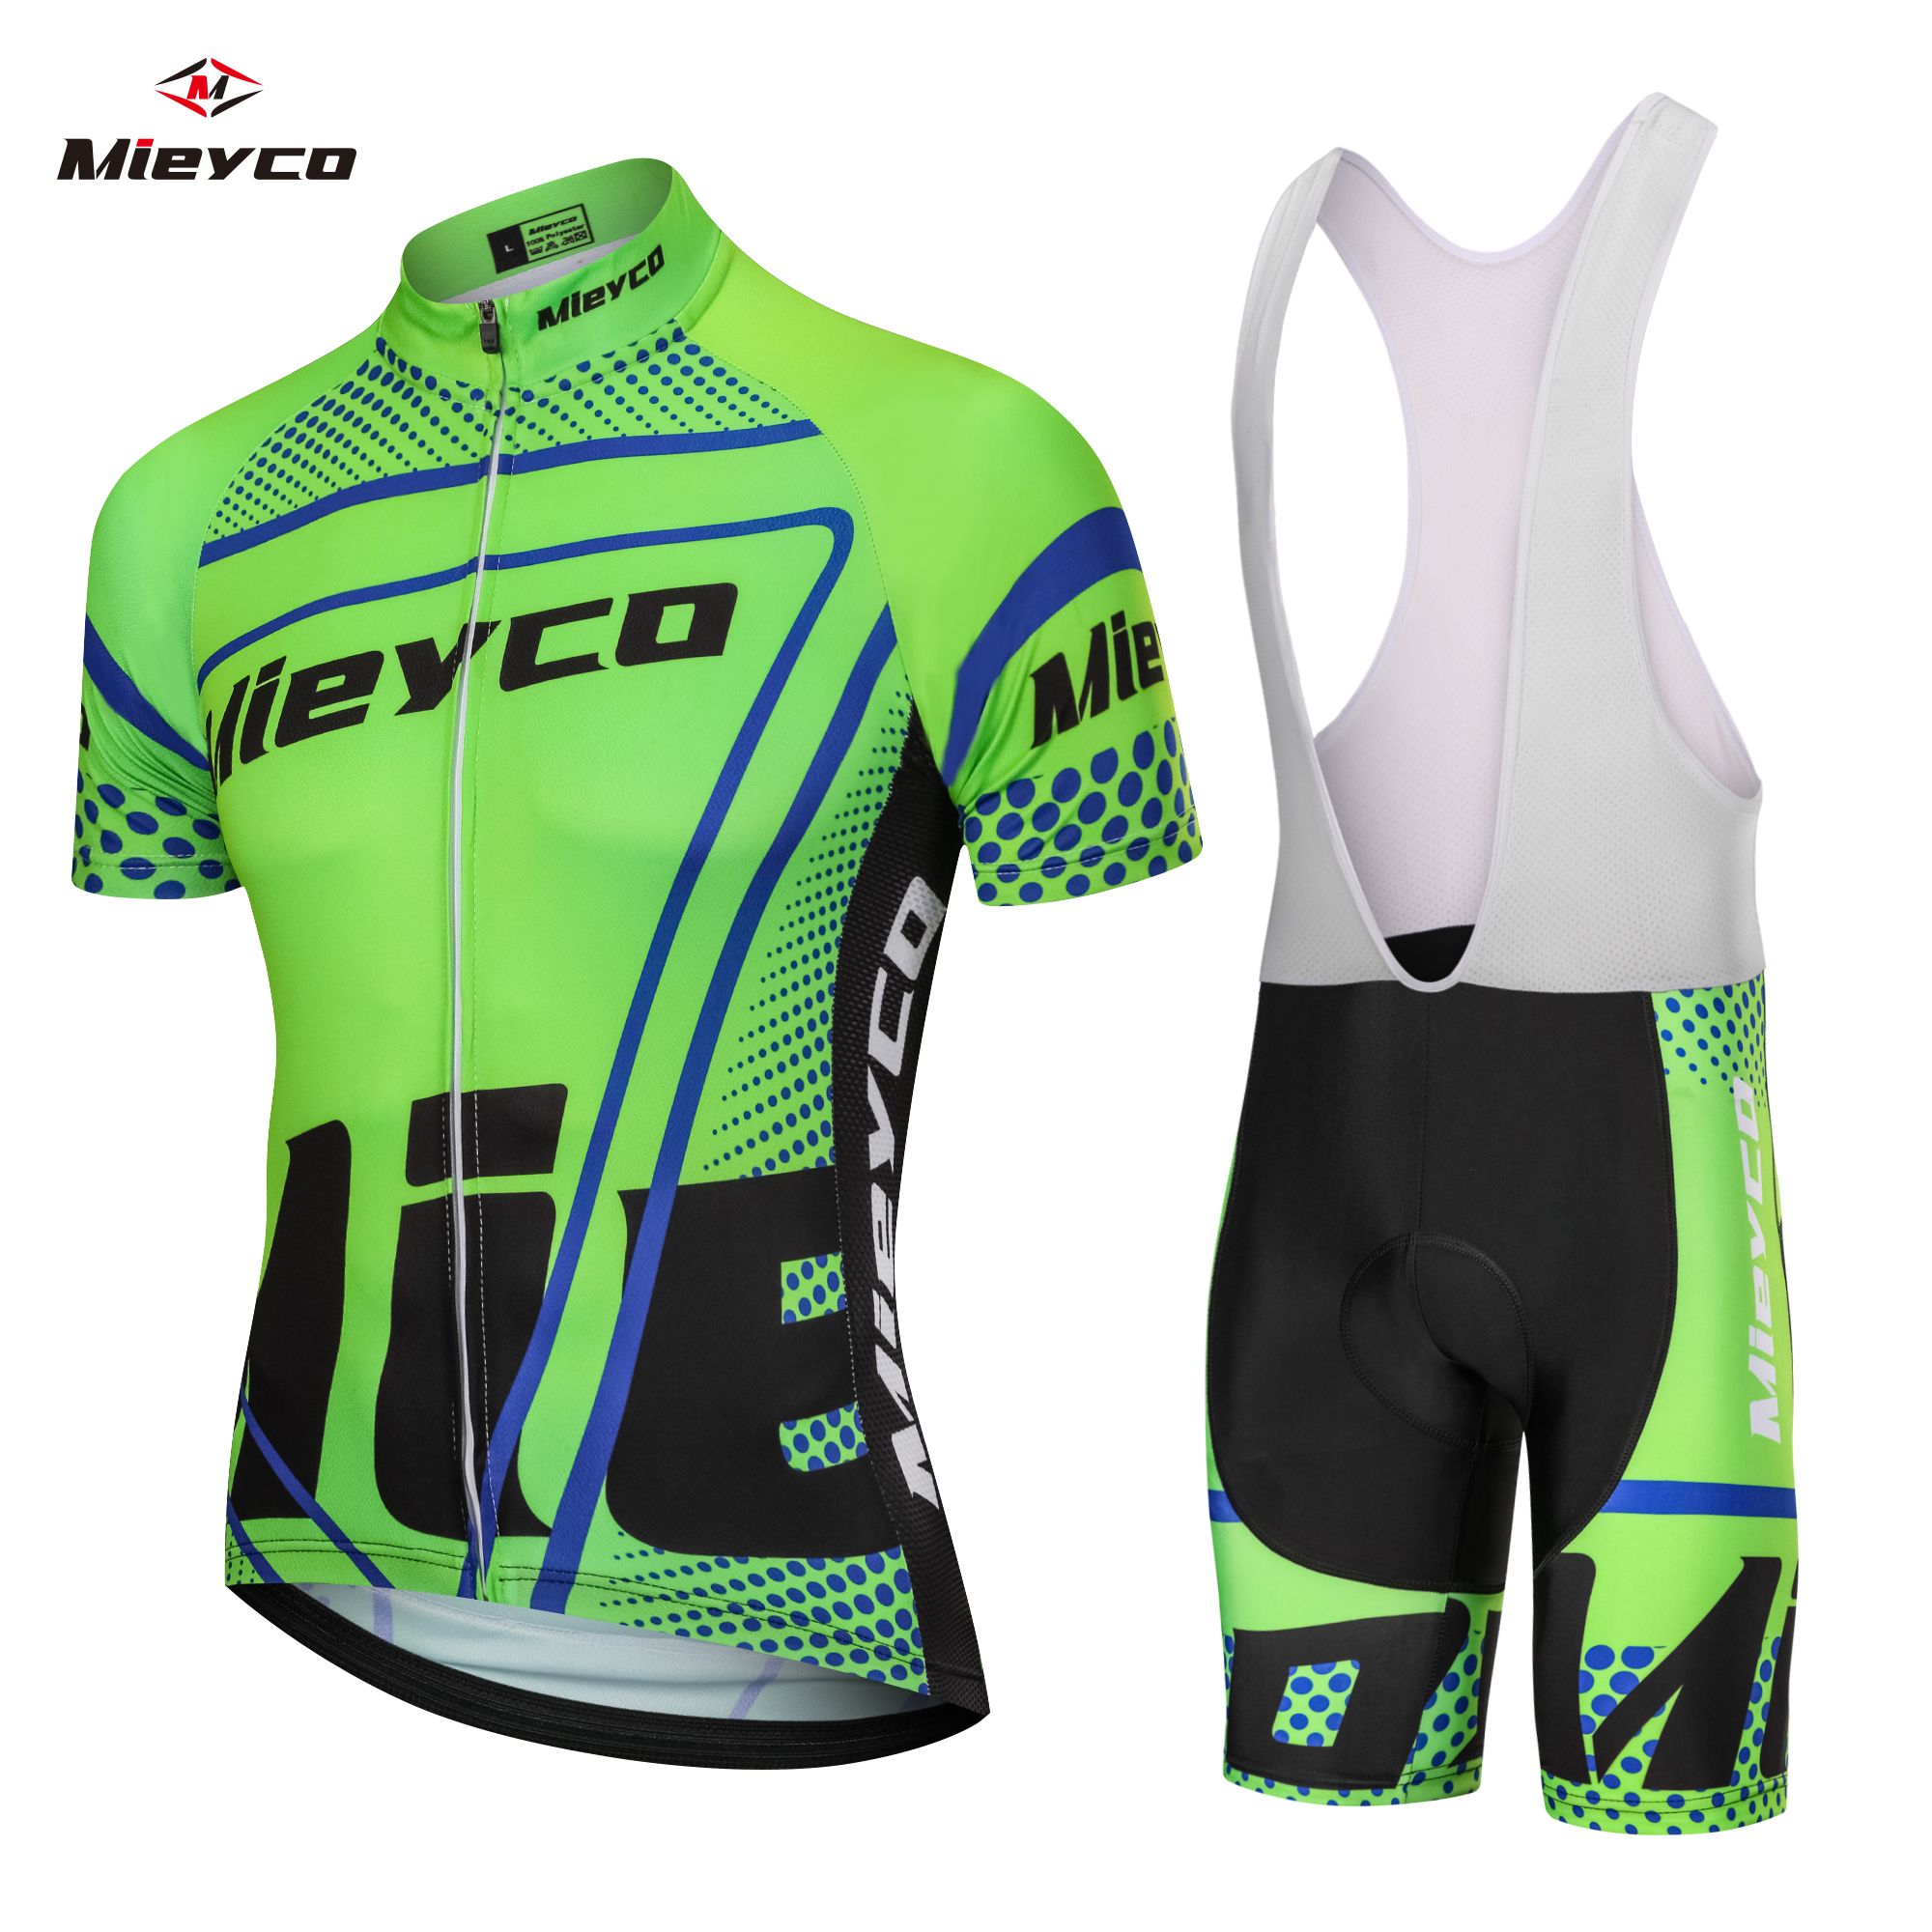 2019 <strong>Specializeding</strong> Pro Cycling Jersey Set Breathable Racing Sport Bicycle Jersey Mens Cycling Clothing Short Bike Bib Shorts